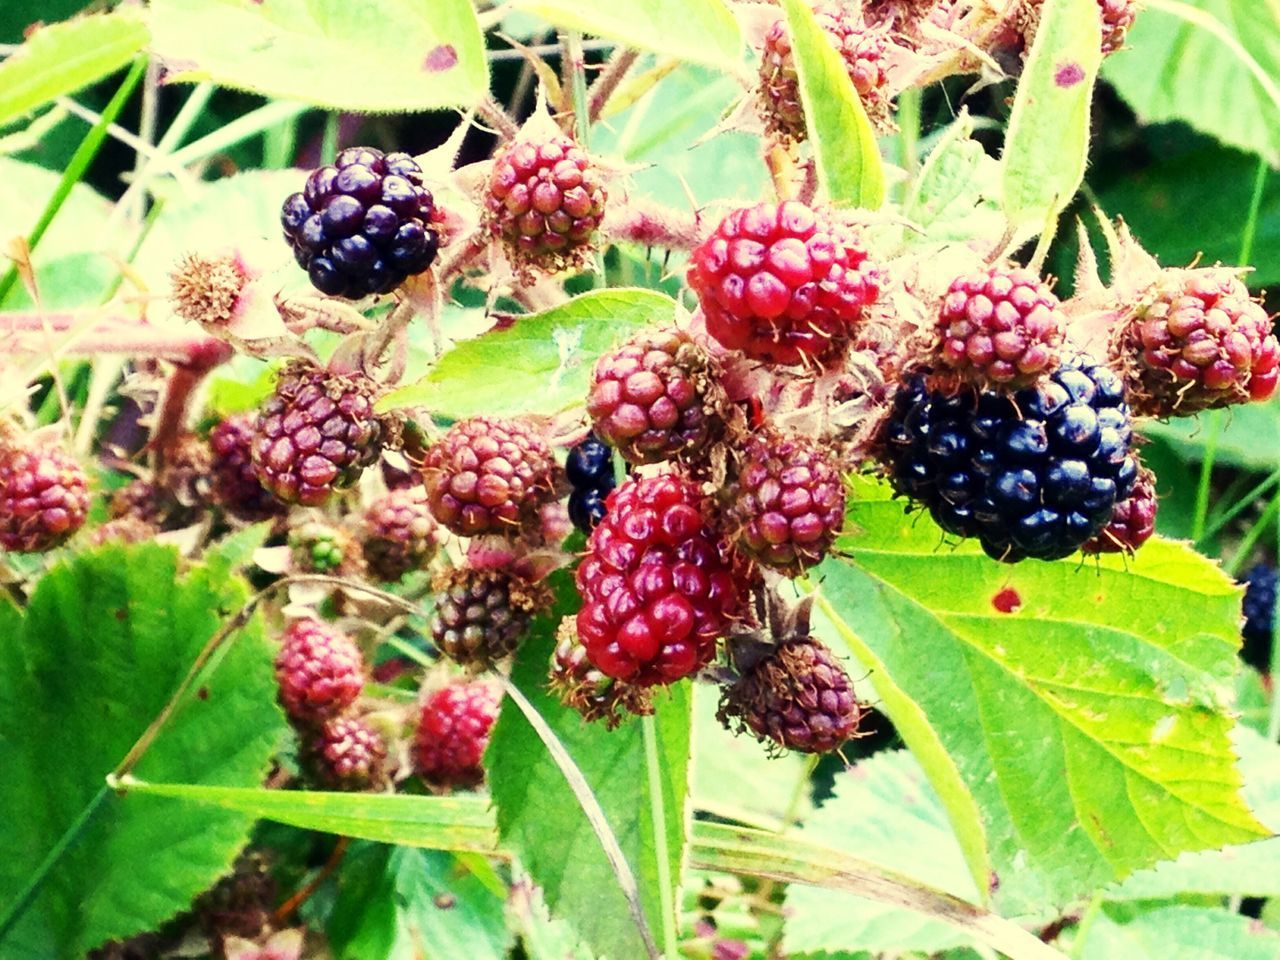 fruit, food and drink, berry fruit, blackberry, food, growth, freshness, leaf, nature, healthy eating, plant, close-up, no people, green color, day, outdoors, focus on foreground, beauty in nature, tree